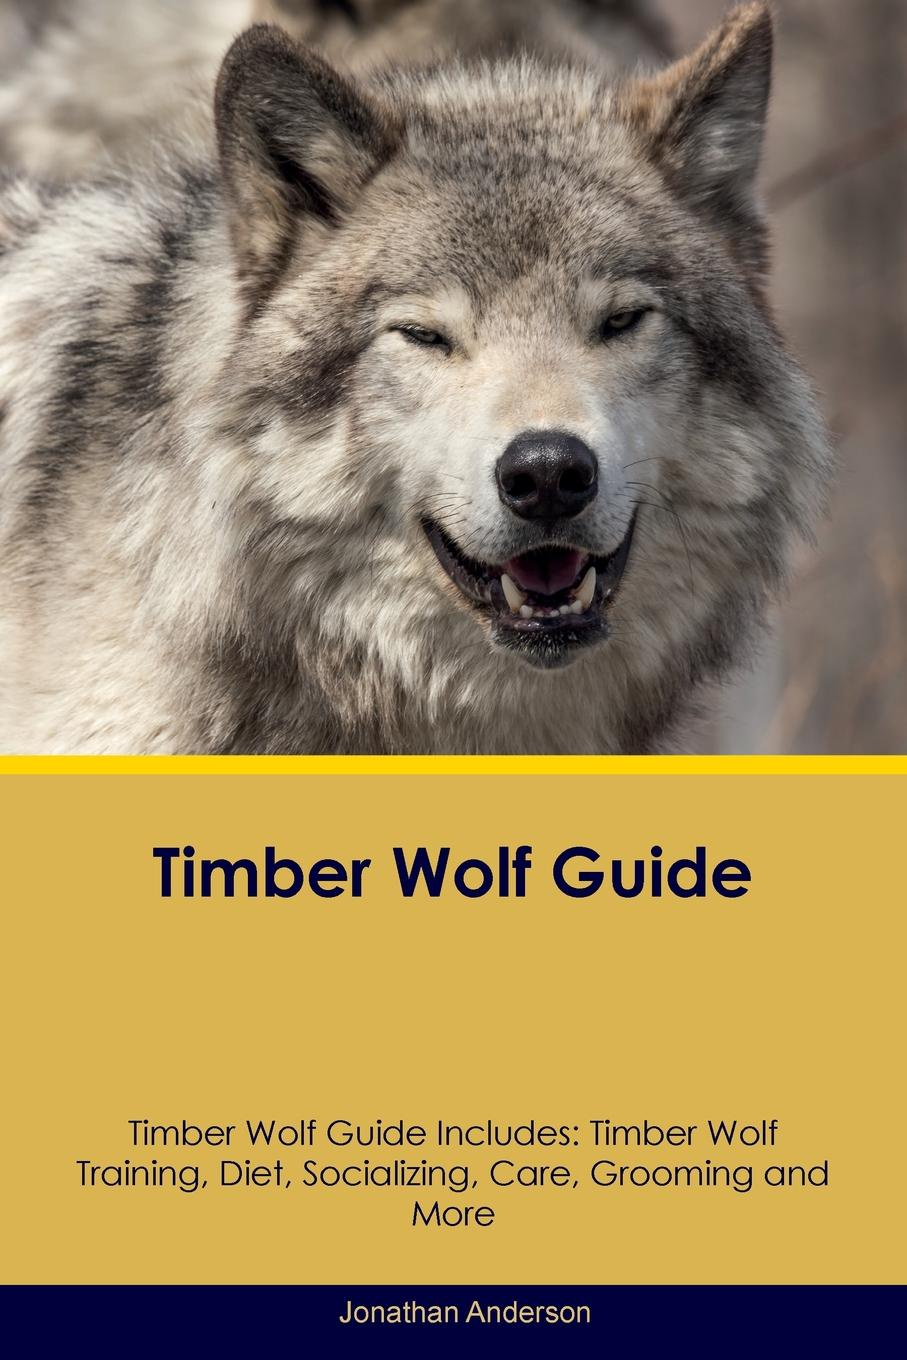 Jonathan Anderson Timber Wolf Guide Includes. Training, Diet, Socializing, Care, Grooming, Breeding and More